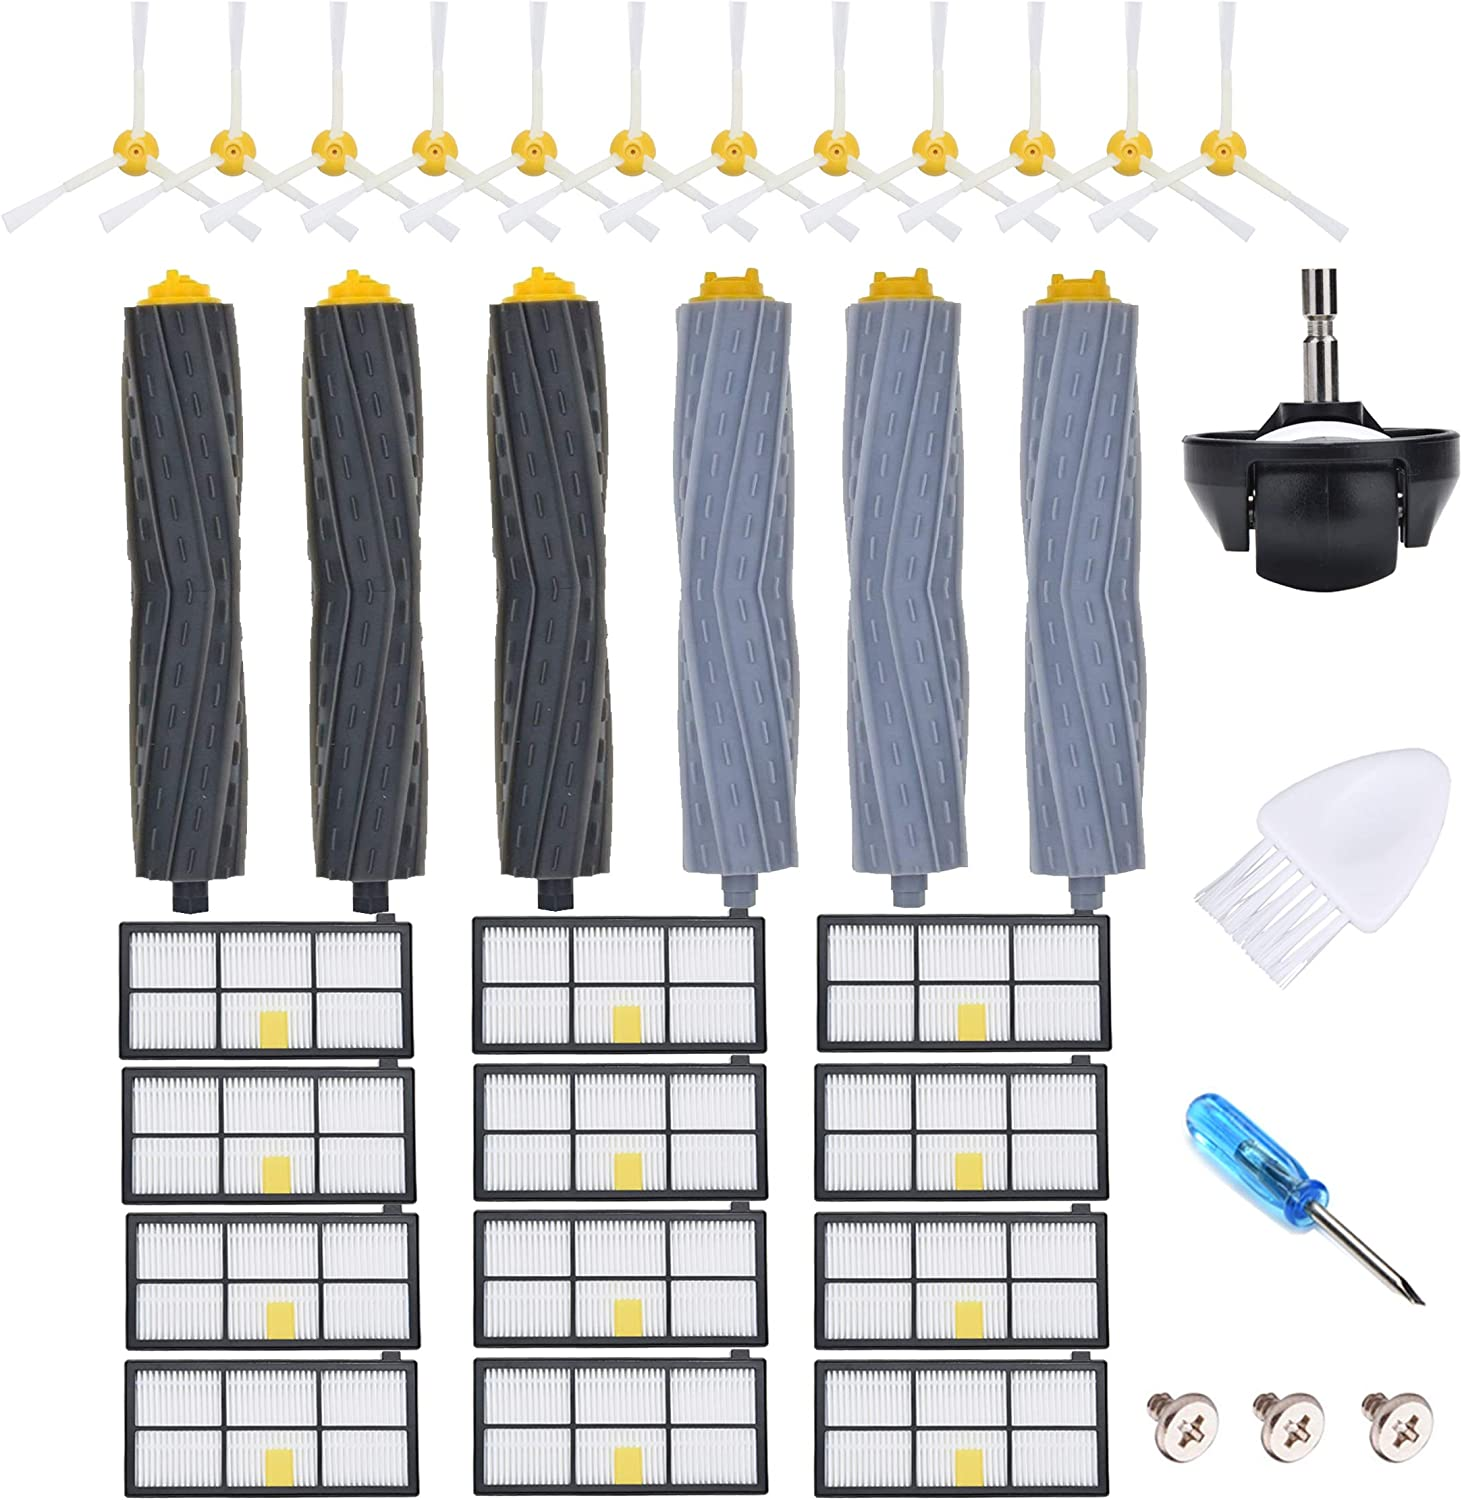 JoyBros 31-Pack Replacement Parts Compatible for iRobot Roomba Accessories 980 860 870 880 890 895 960 Caster Wheel Hepa Filter Brush Roller Vacuum Replenishment Kit…